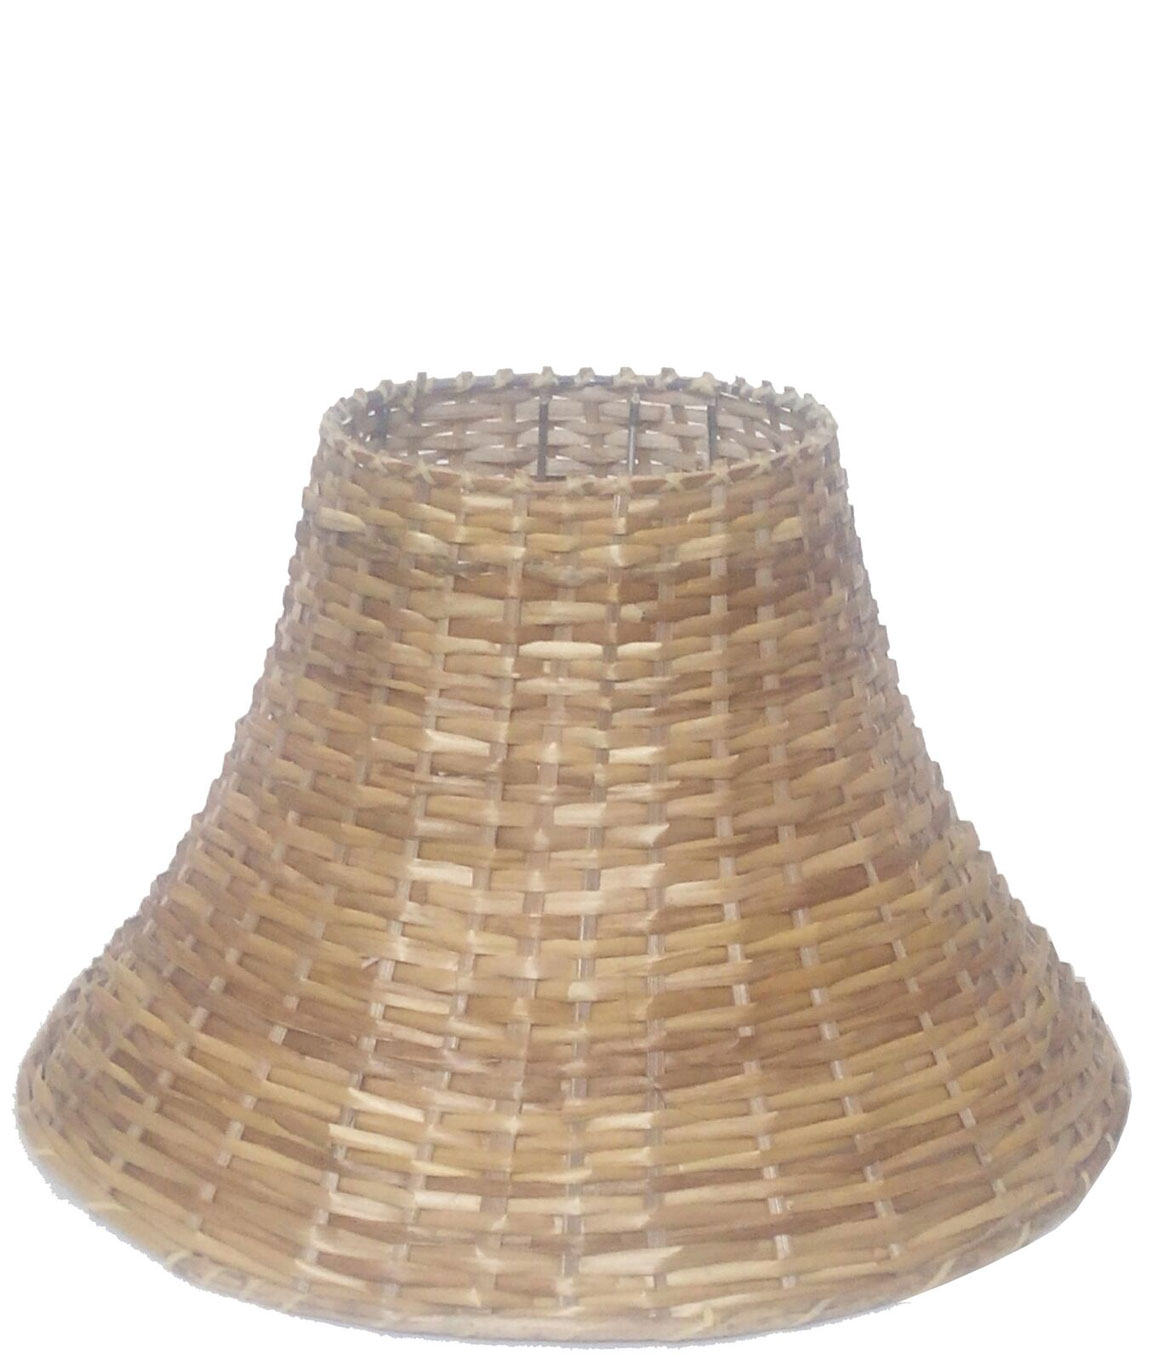 RDC 12 Inches Round Slanting Cane Lamp Shade for Table Lamp